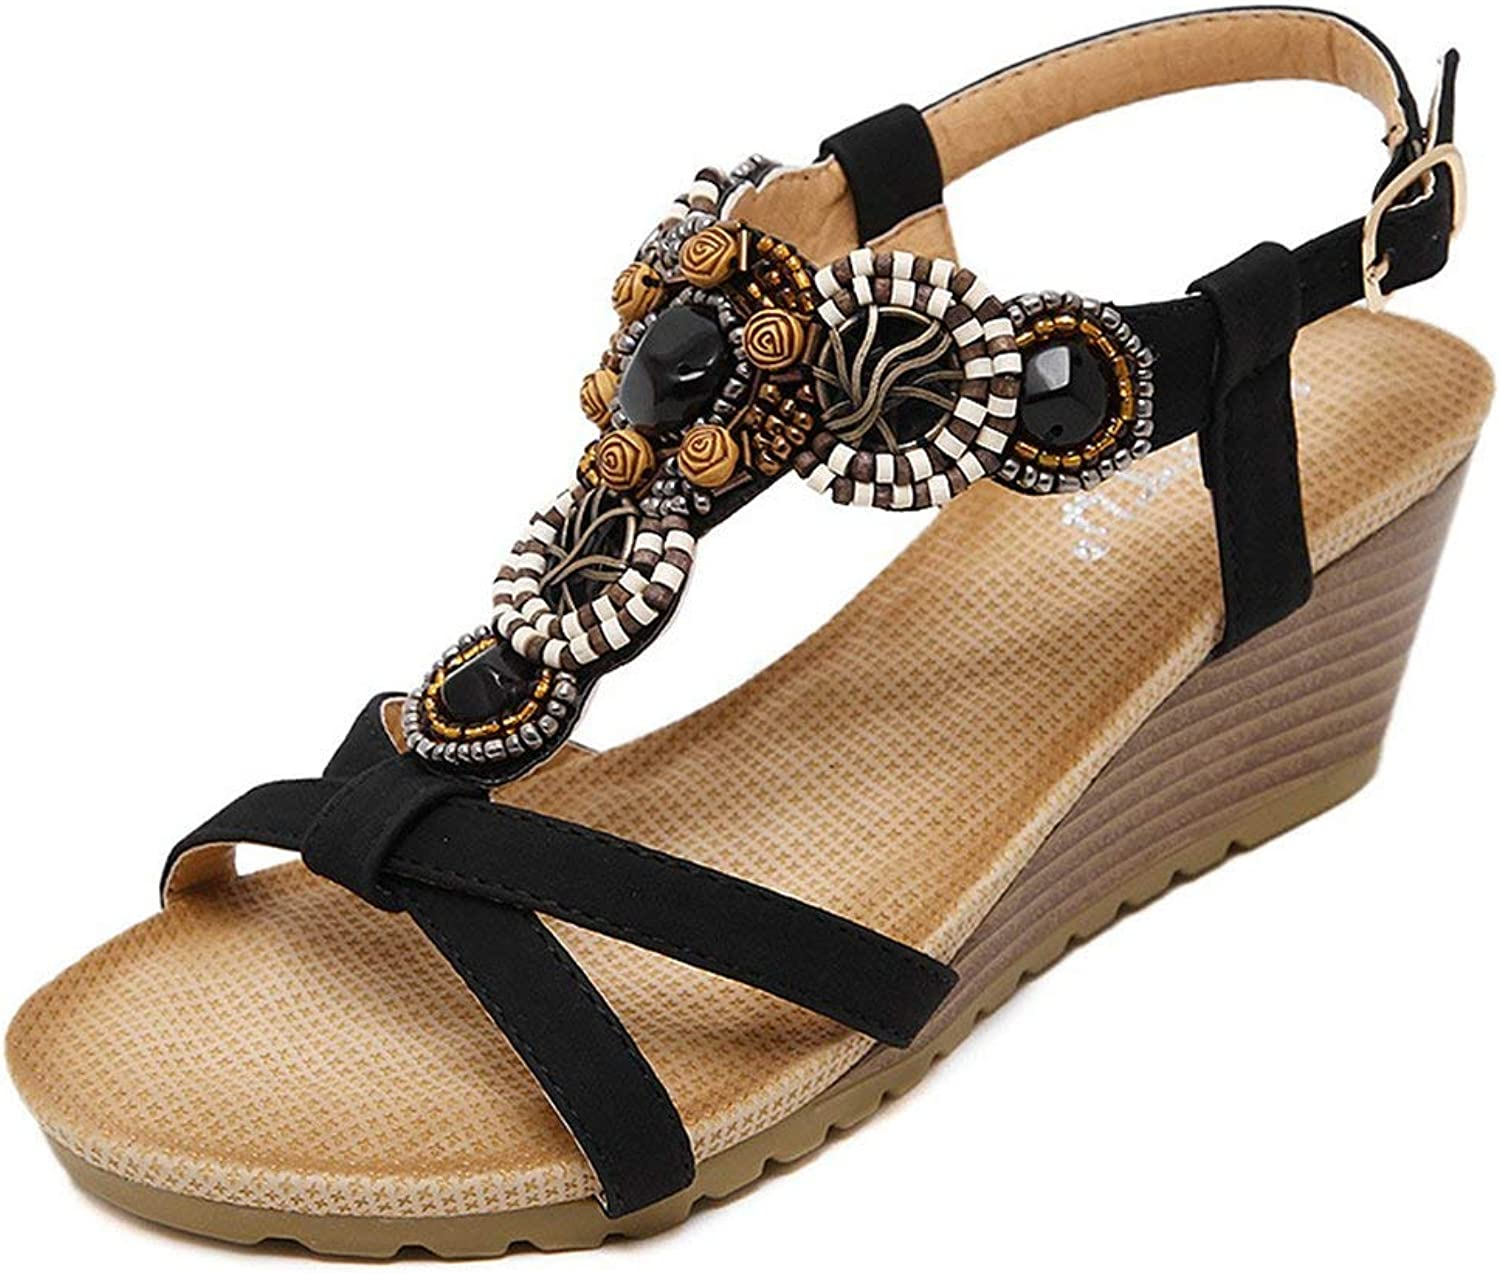 Ghapwe Women's Bohemian Beaded T-Strap Comfort Gladiator Wedge Heel Sandals Beige 4 M US